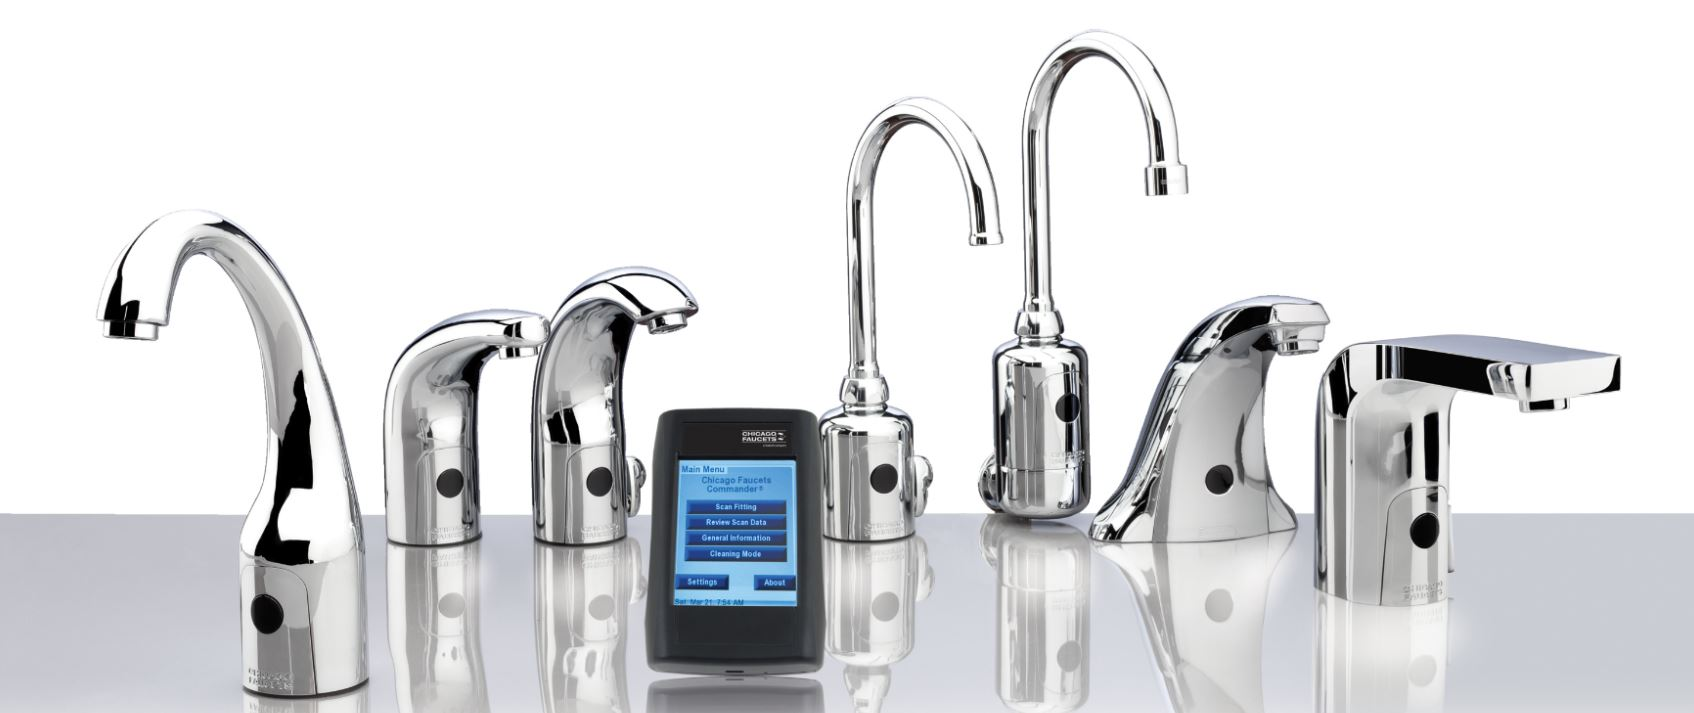 Electronic Sensor Faucets Offer 1 5 Gpm Flow Rate Insert